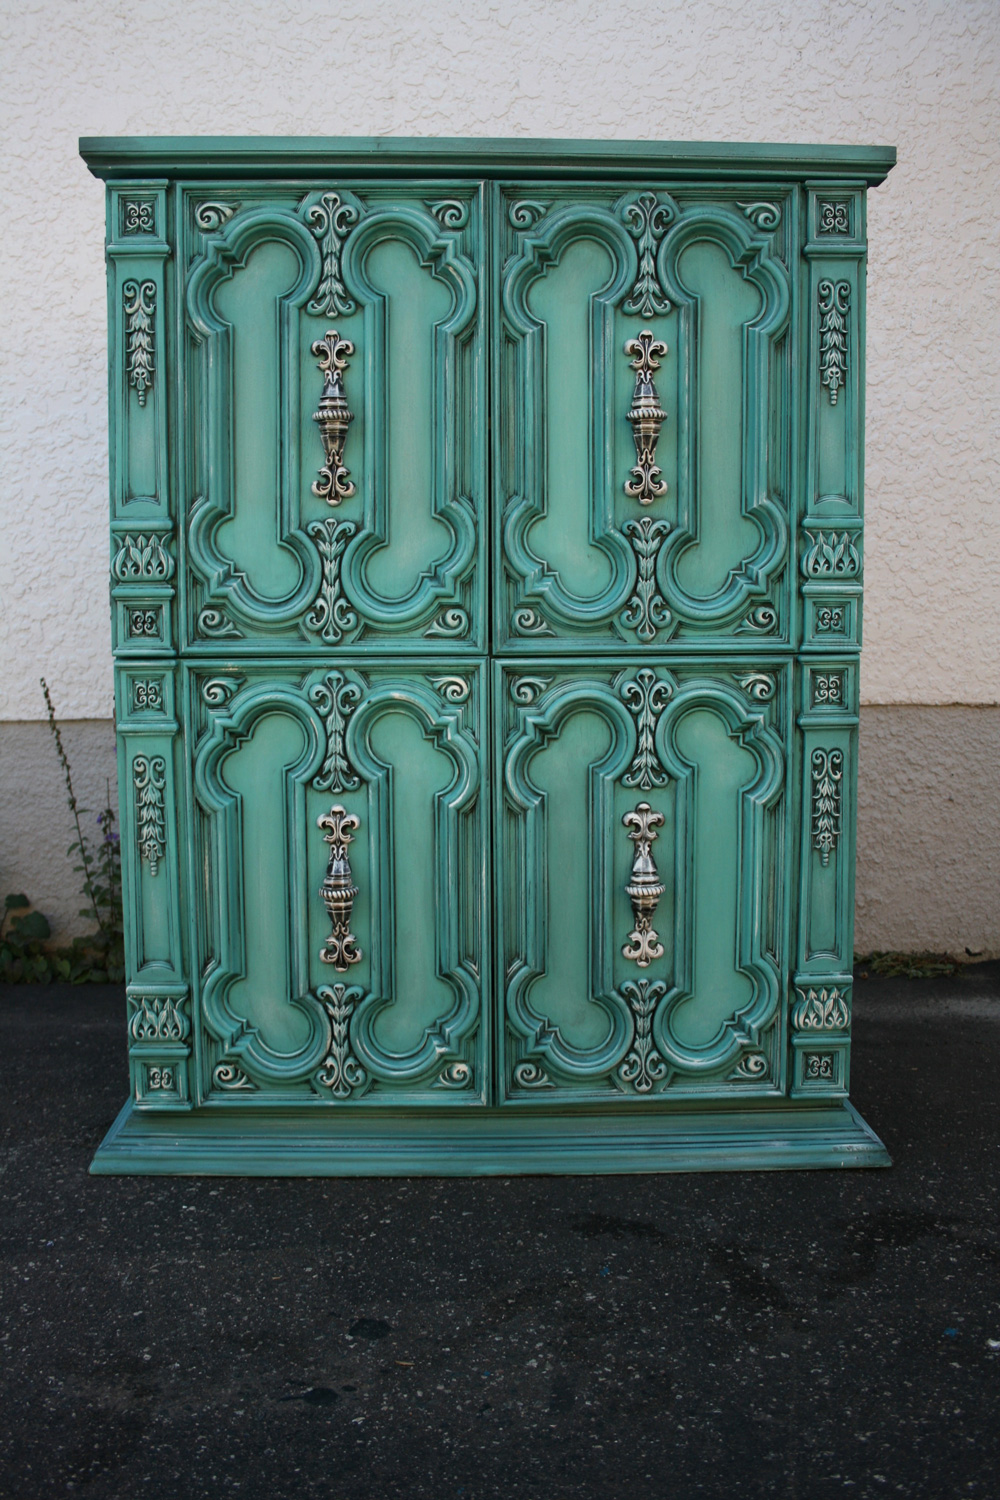 Armoire painted by Joanne Malicki of Thunder Bay, Ontario. Joanne is the owner of Wild Mustang Studio by Joanne Malicki.